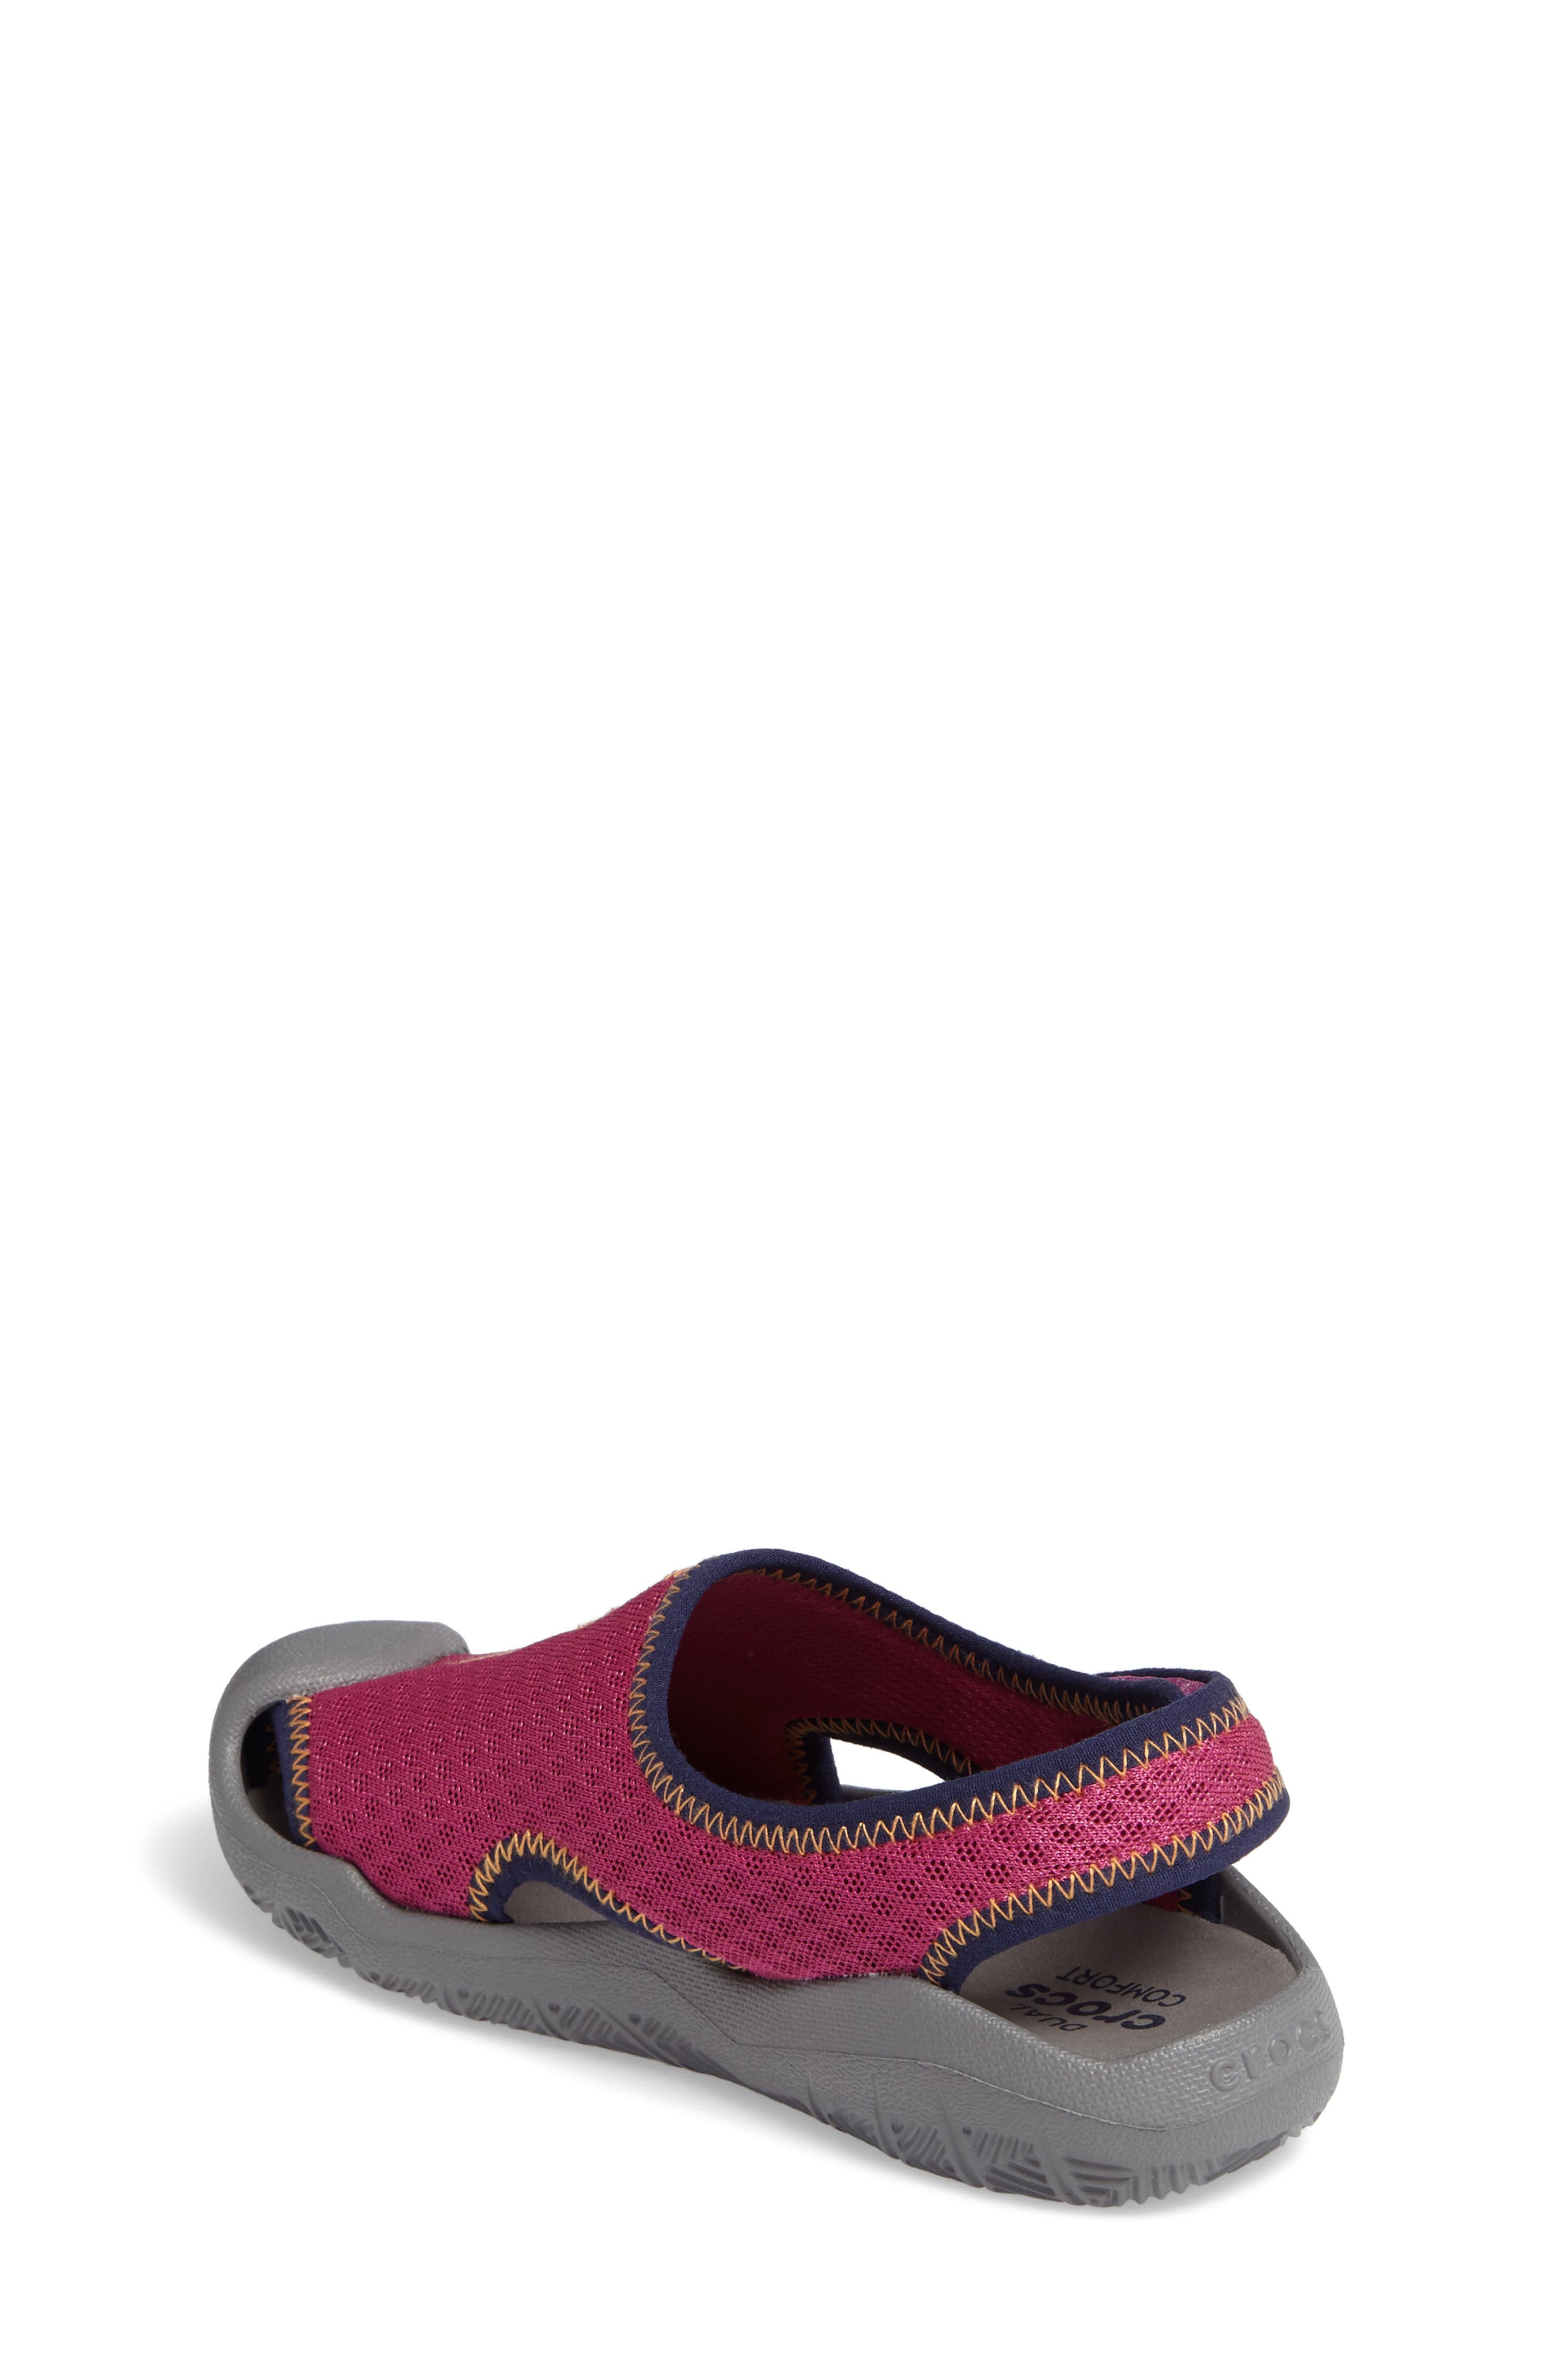 Swiftwater Sandal,                             Alternate thumbnail 10, color,